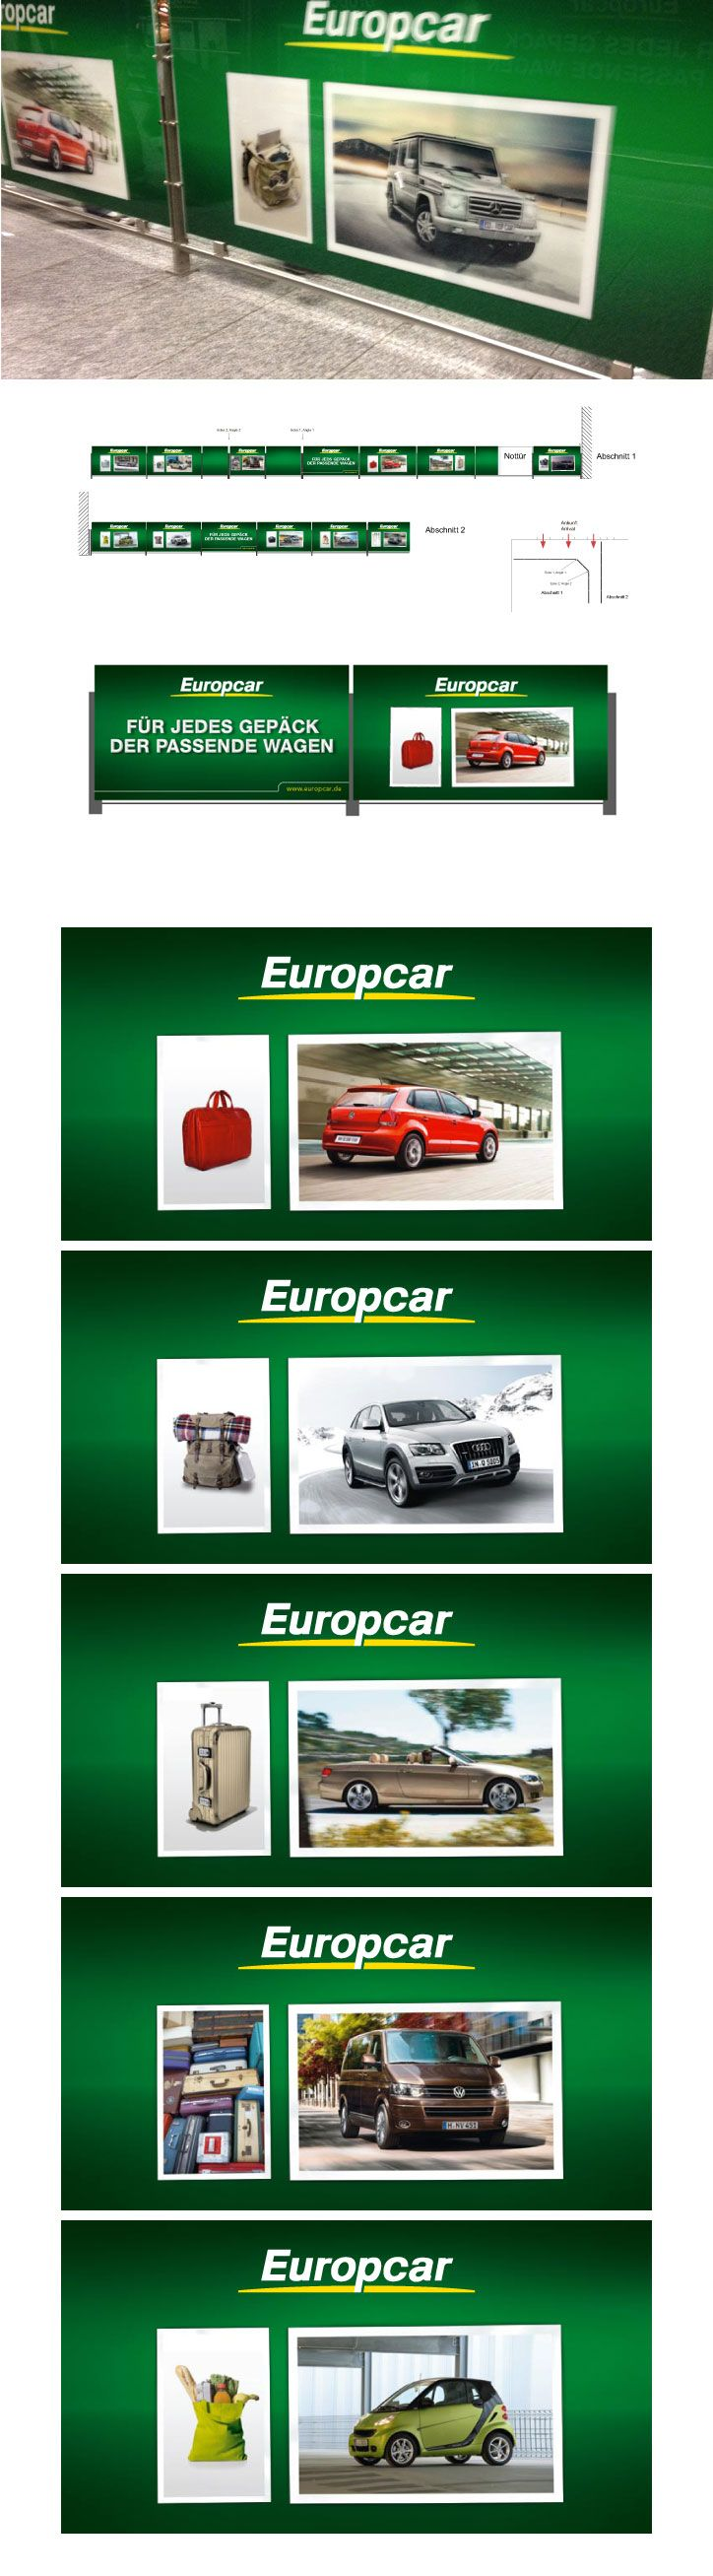 "Traveling a lot? Europcar has the perfect car for every luggage you can imagine.  The ""Welcome Branding"" can be seen at the Frankfurt International Airport (Terminal 2) since April 2011."